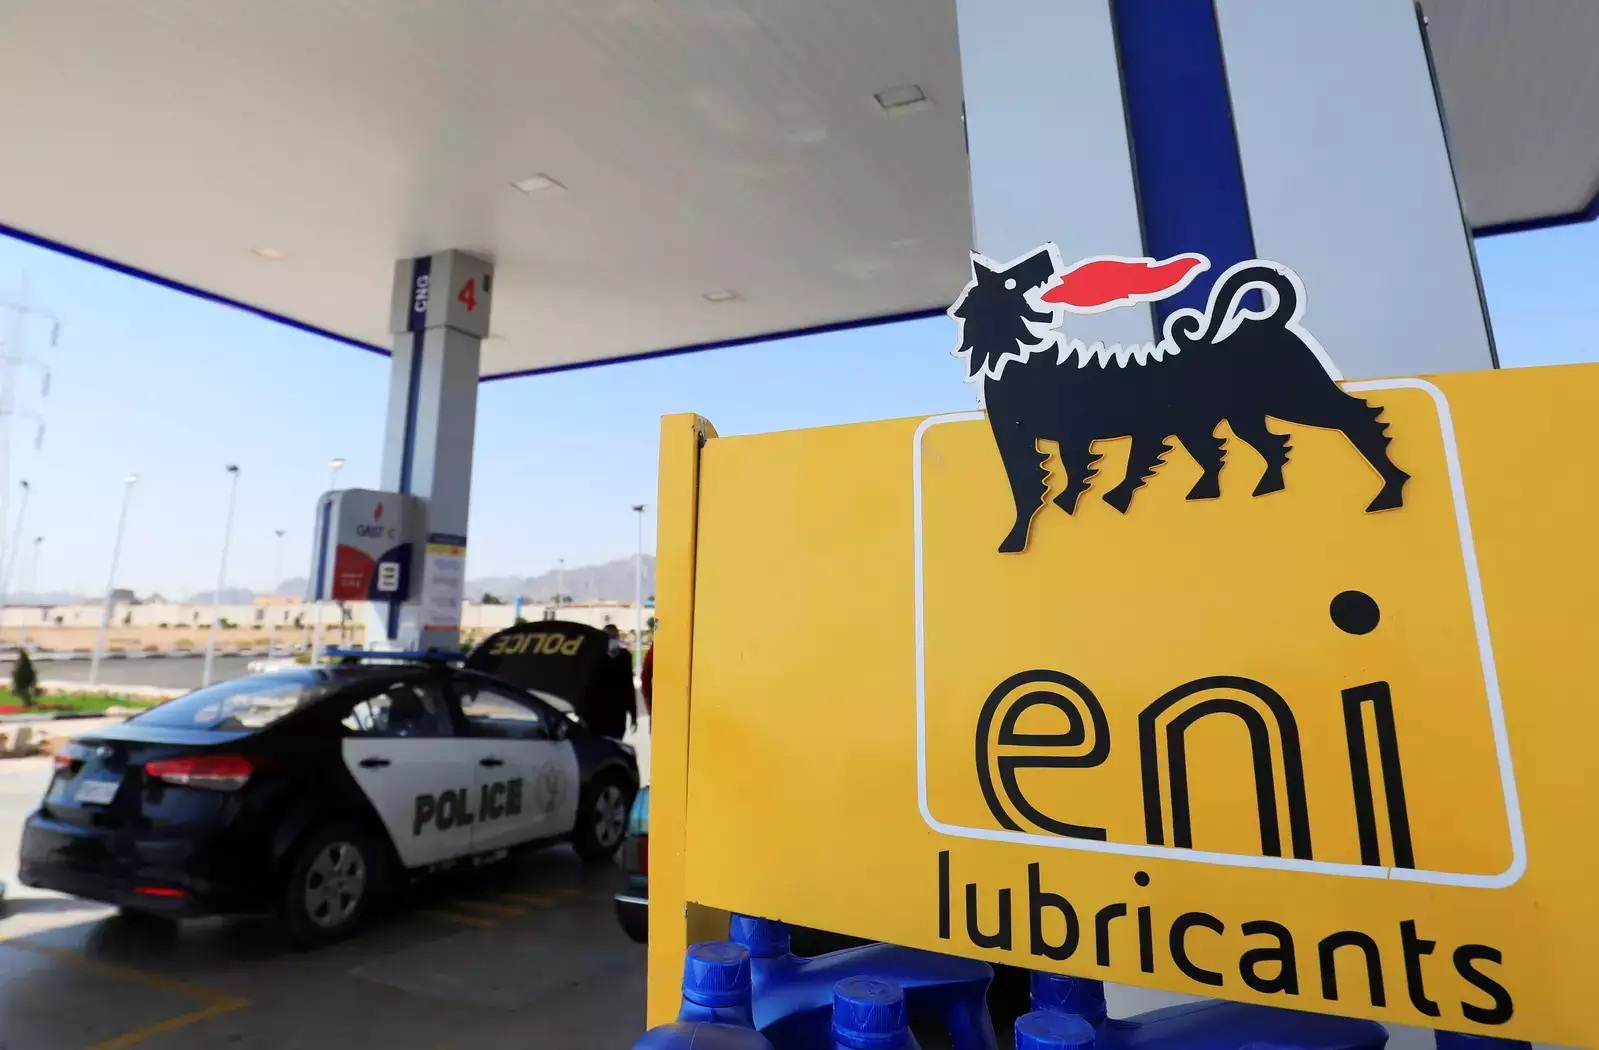 Italy's Eni, CDP form joint venture to invest 800 mln euros in renewable energy